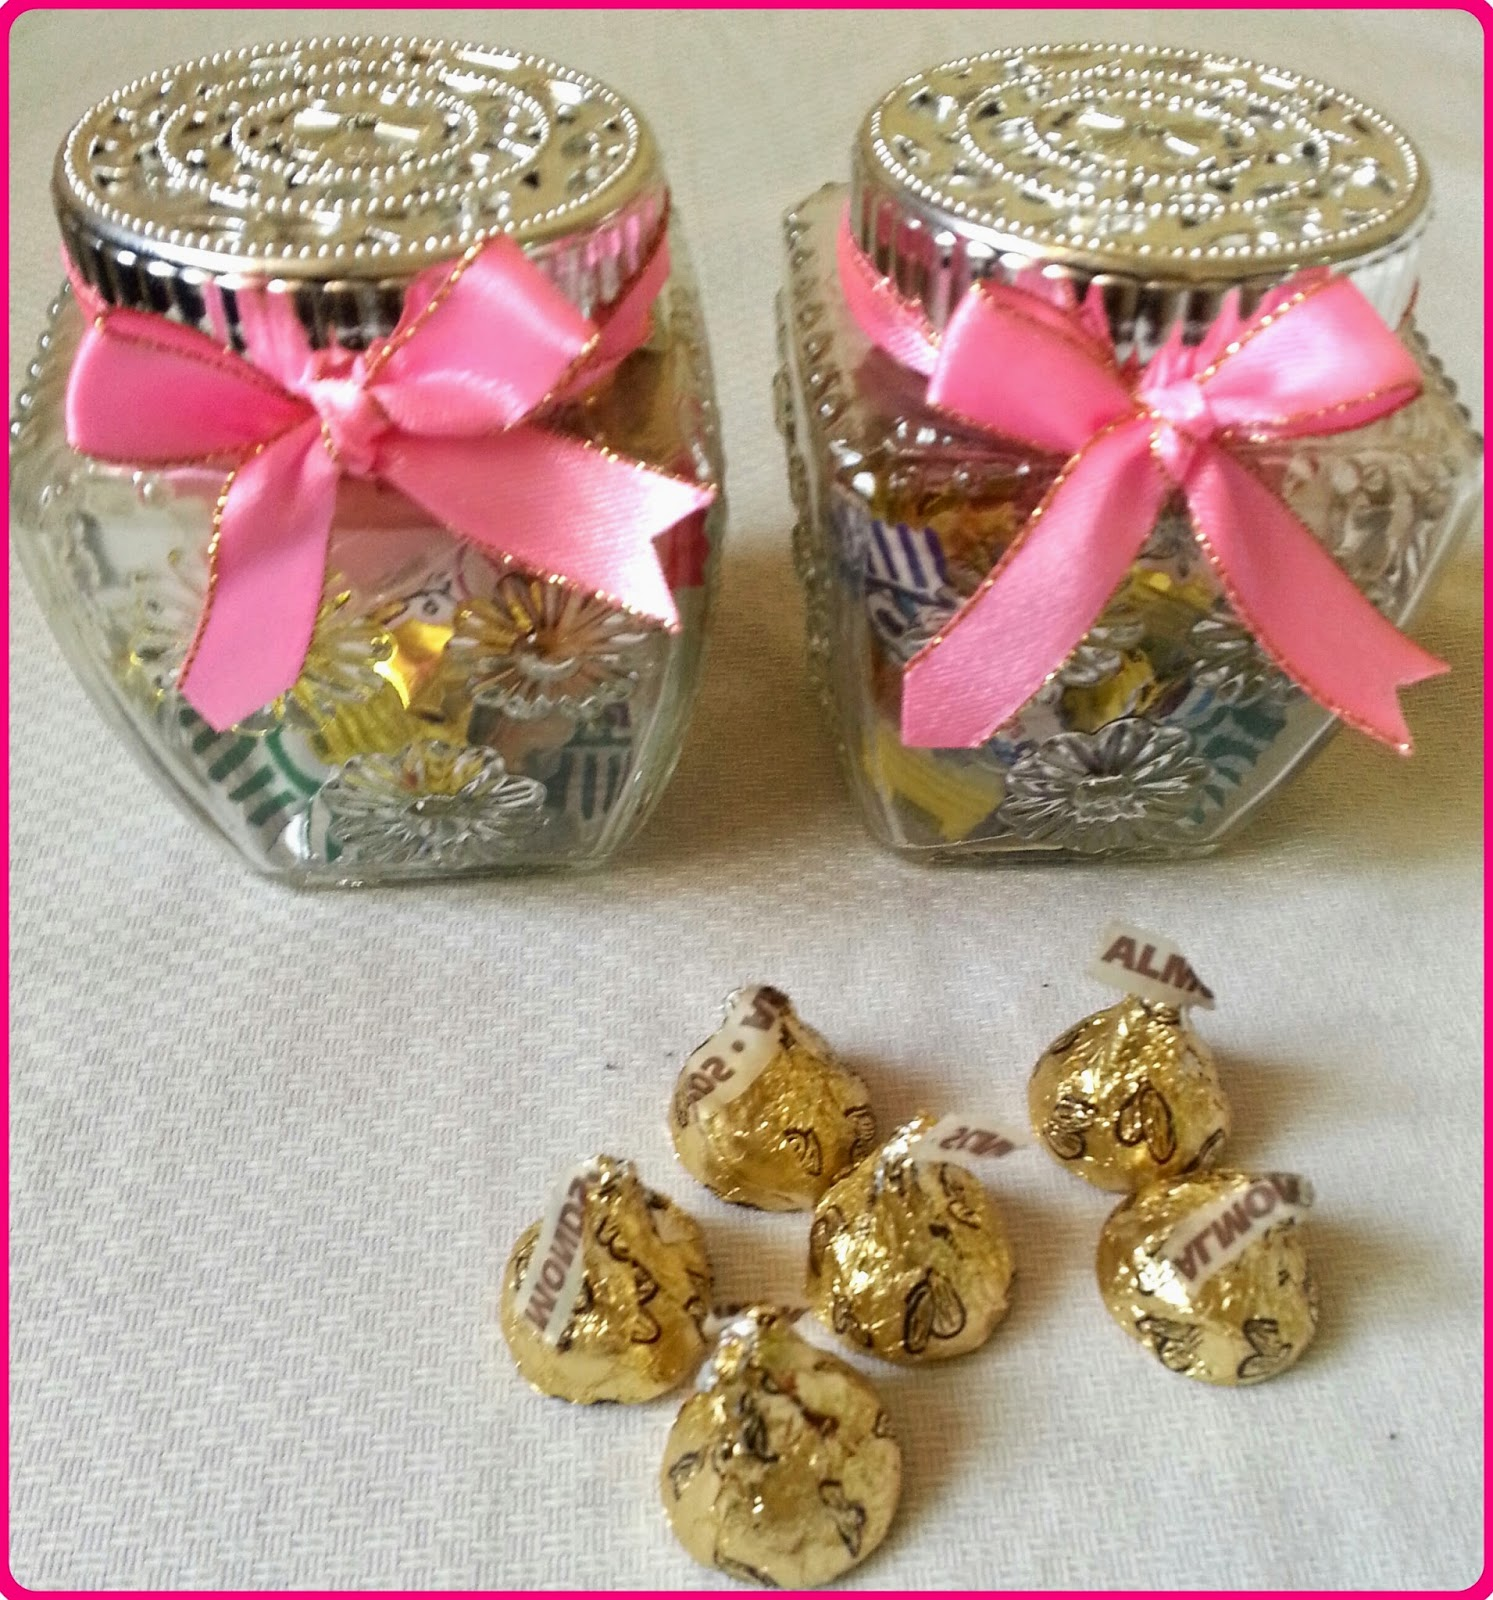 Wedding Gift Ideas For Bride Malaysia : Doorgift Goodies Kahwin Murah: Goodies, Doorgift Murah Tapi Cantik